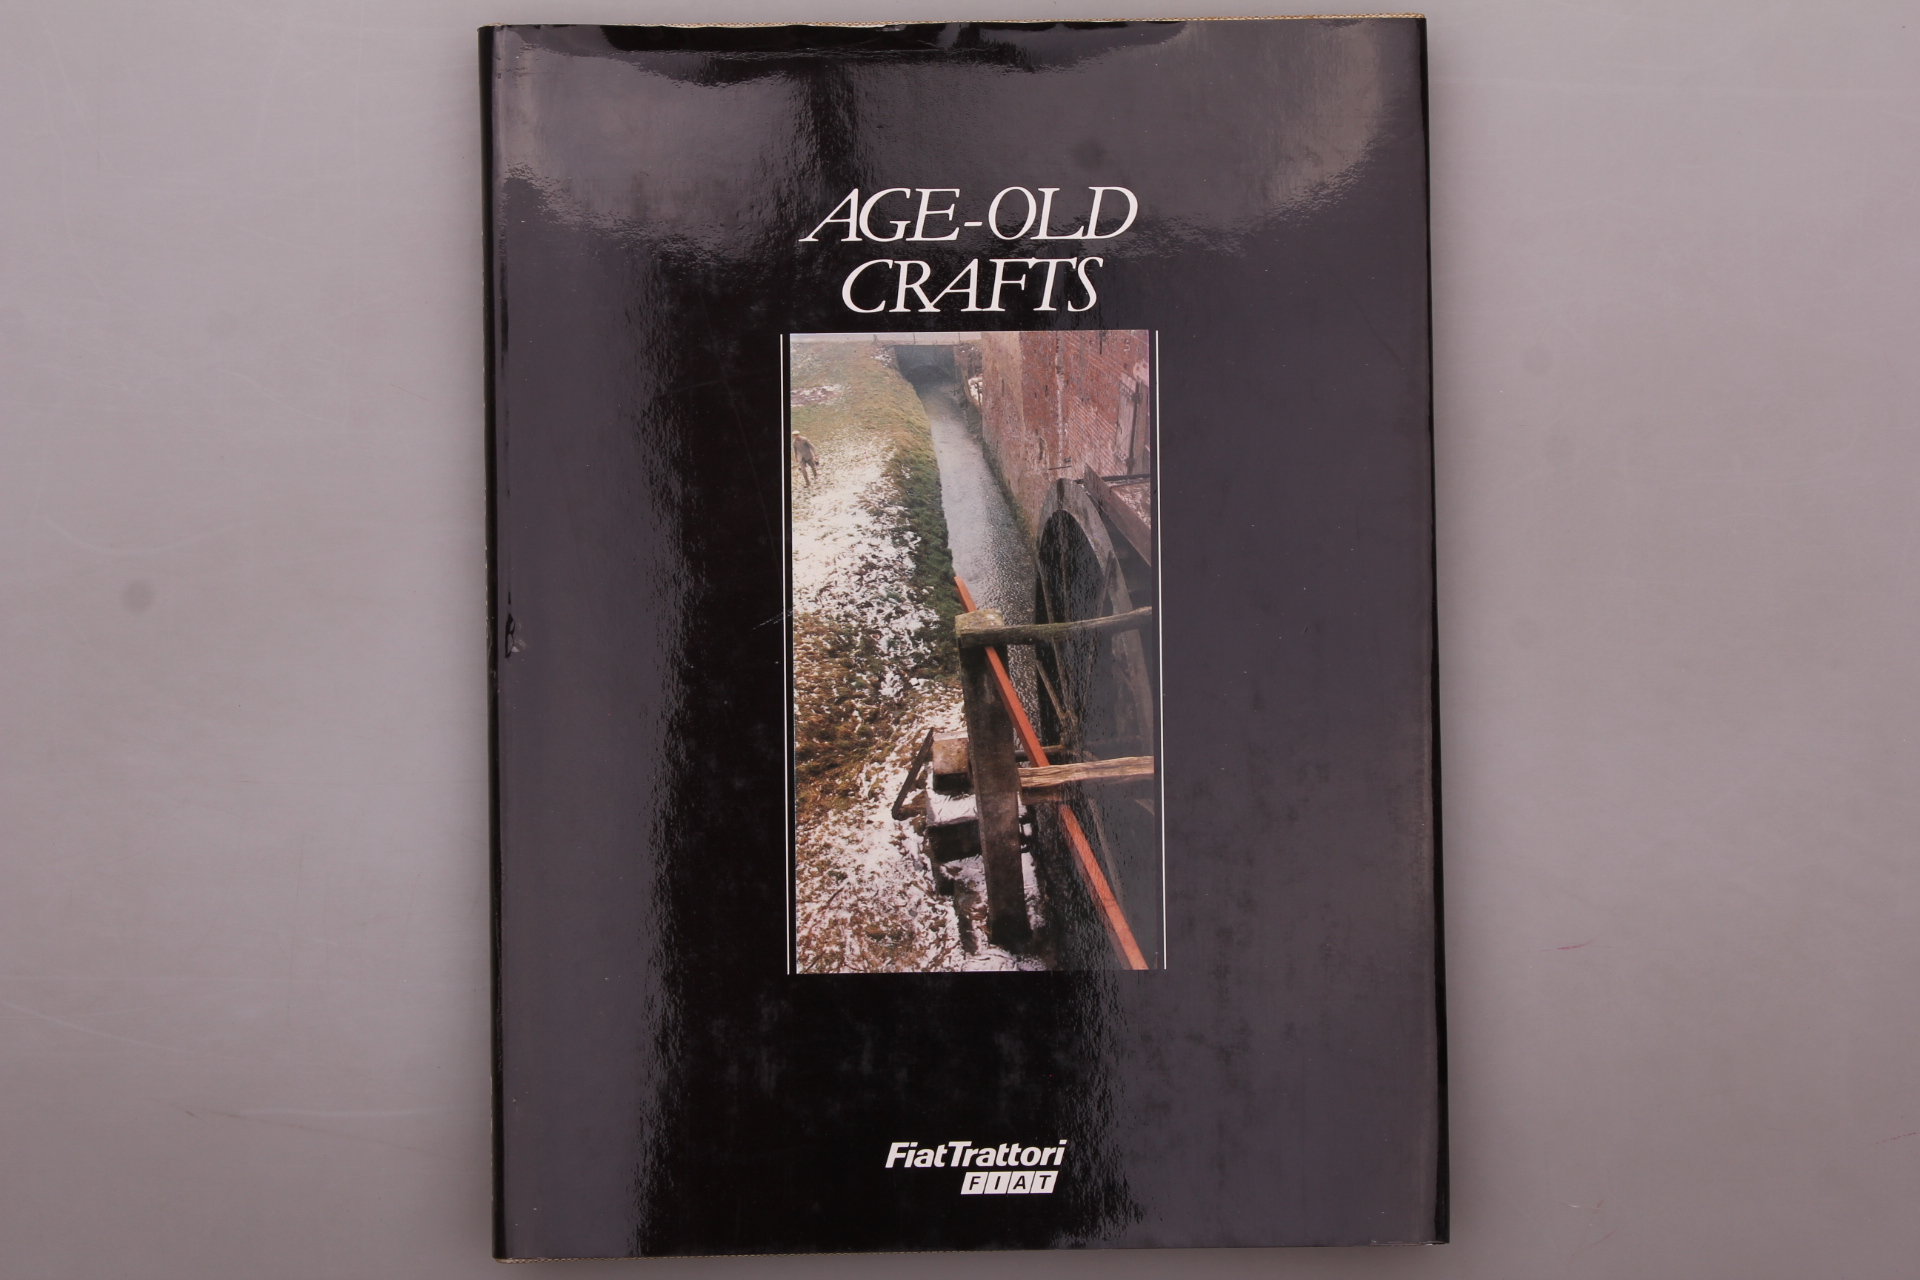 AGE-OLD CRAFTS